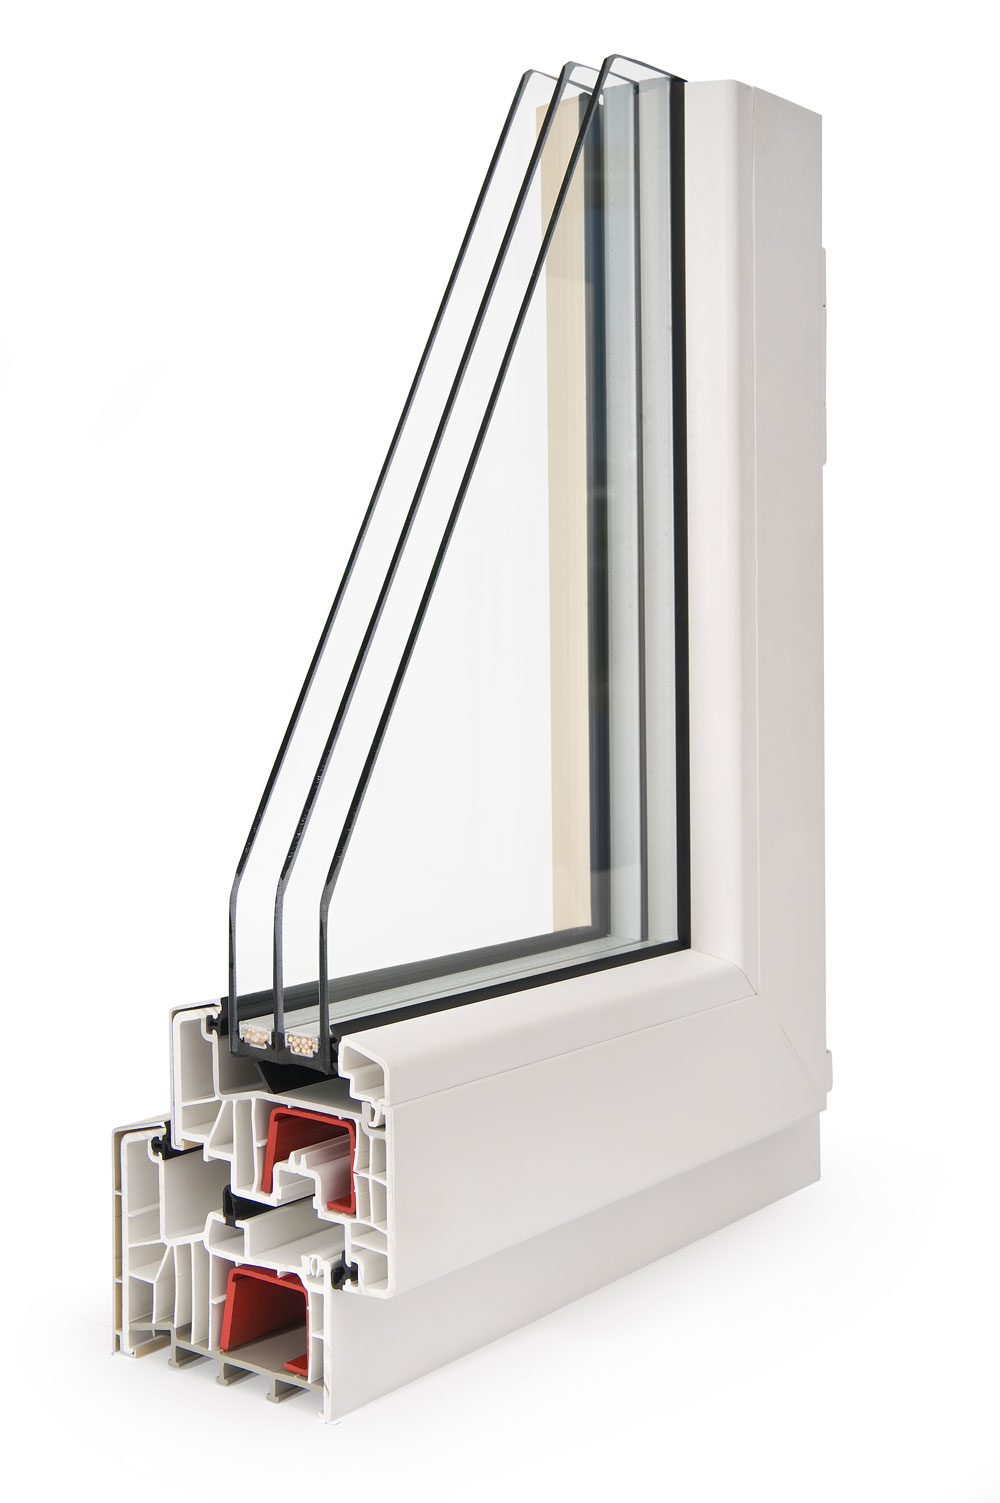 Alu Upvc Windows Gallery Uniwin Windows Amp Doors